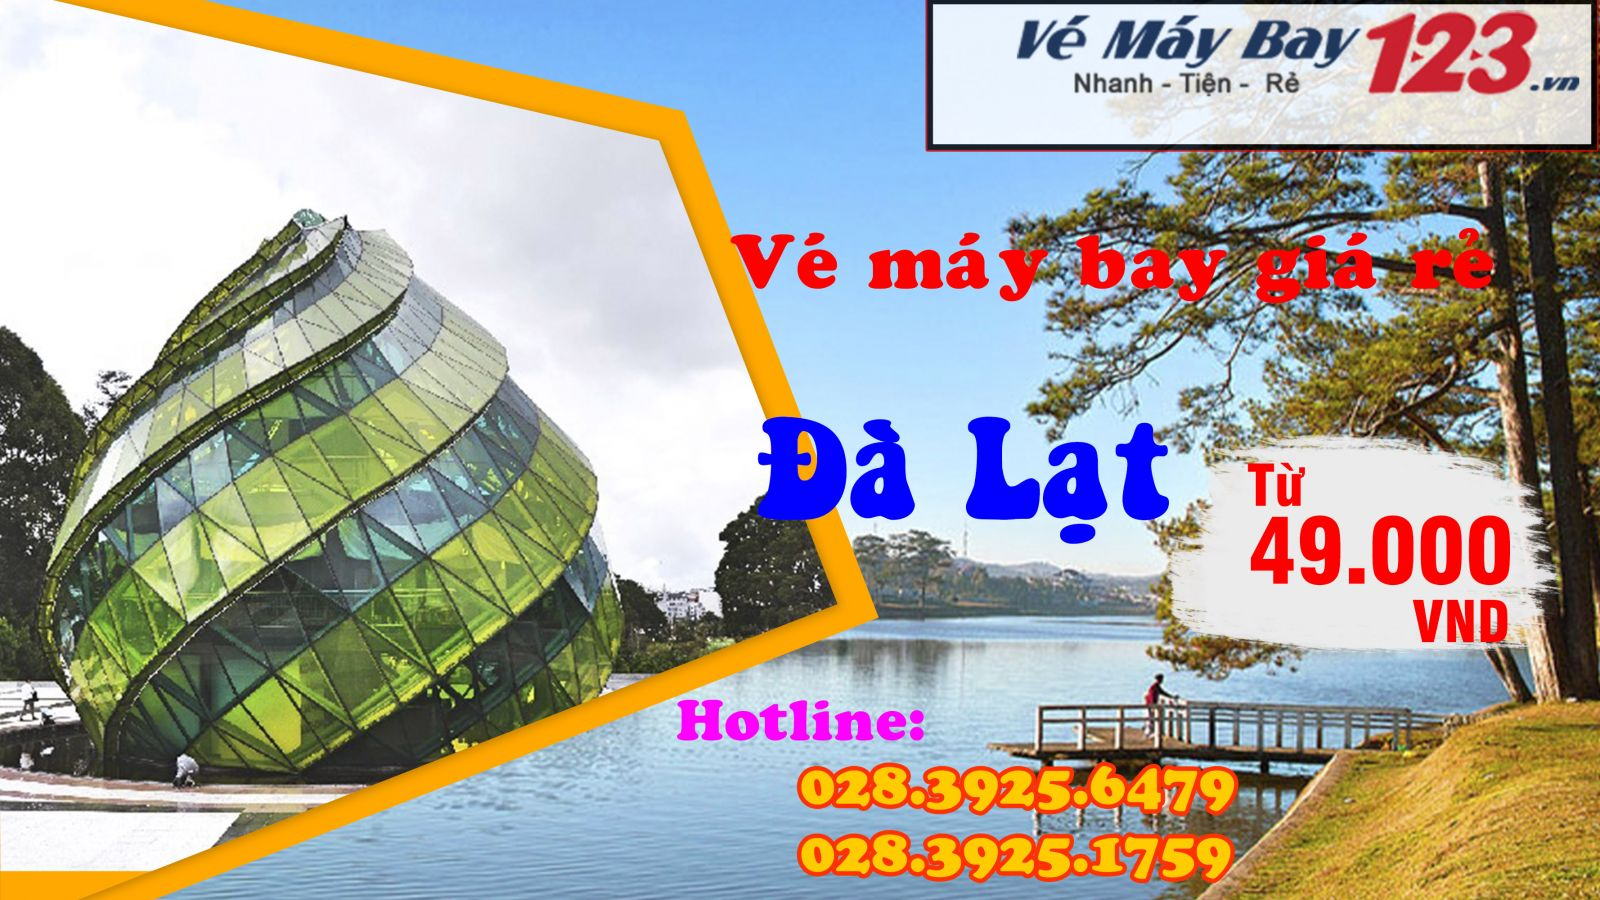 VE MAY BAY GIA RE DI DA LAT